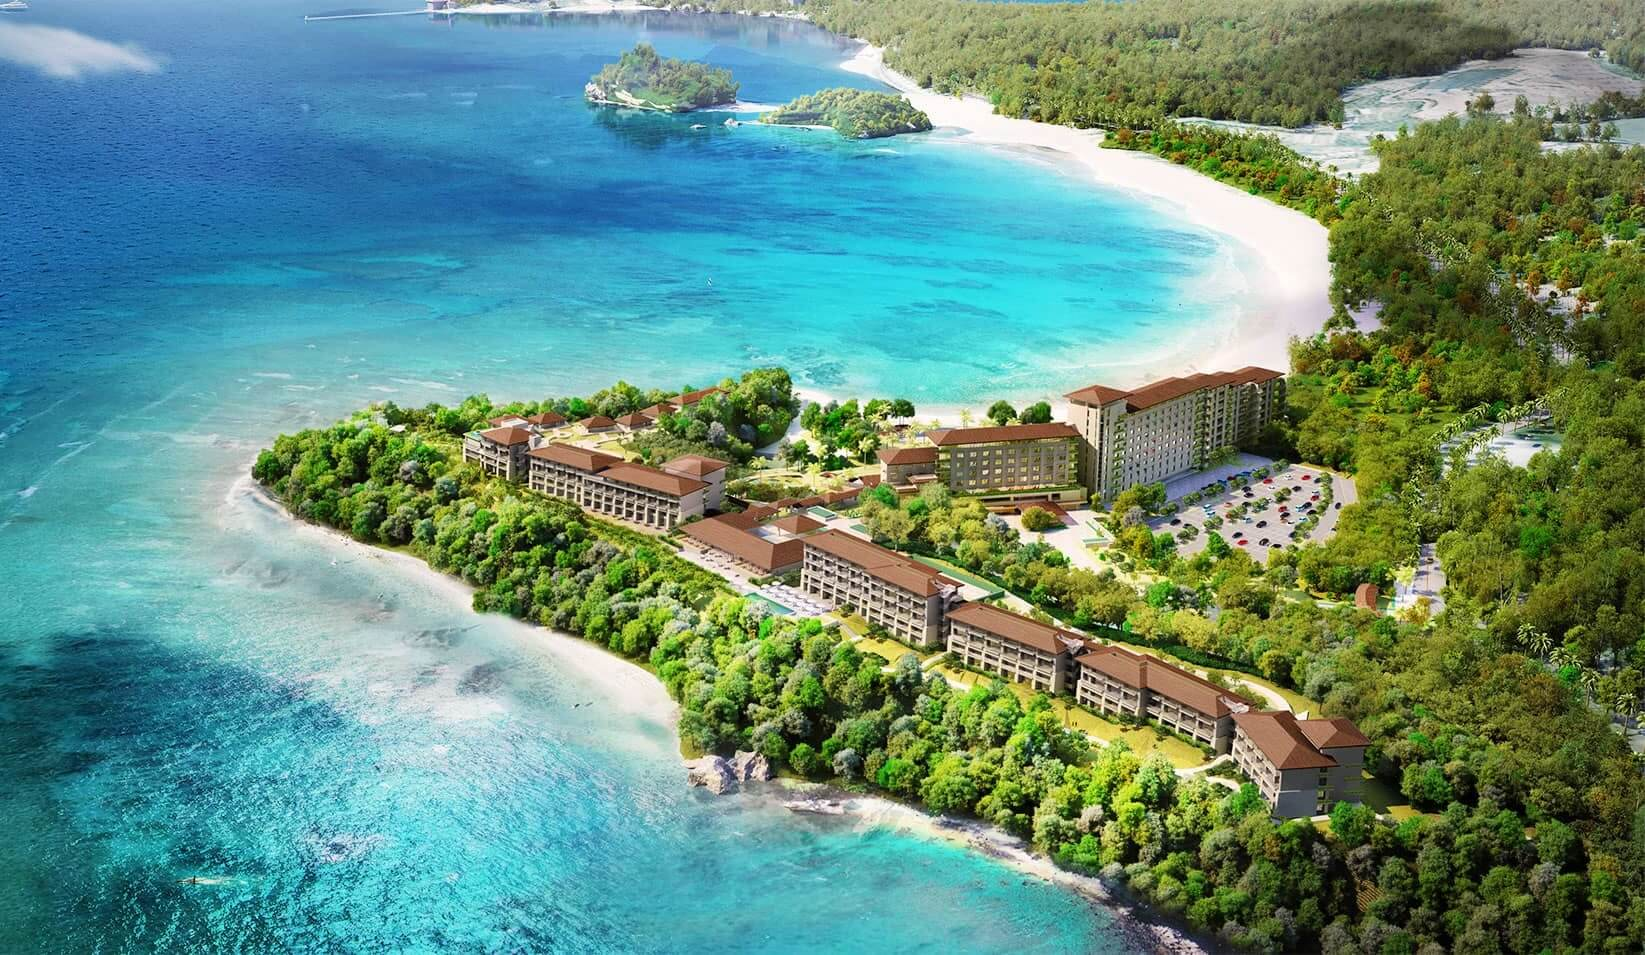 Japan tourism: Multiple new hotels opening in 2019